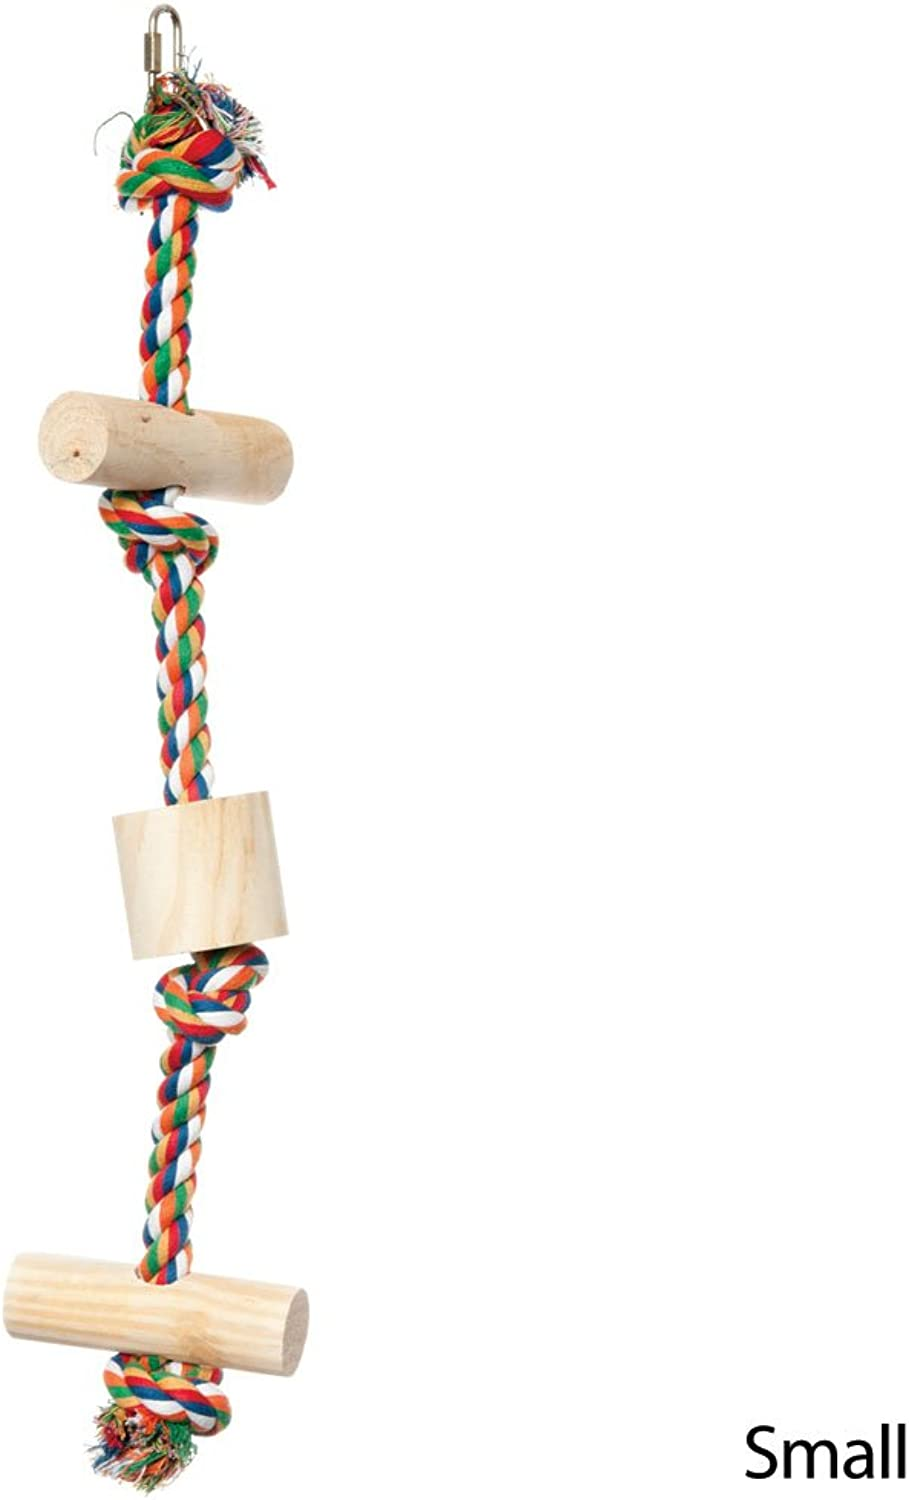 Parredopia CRS Climbing Rope Small Bird Toy by Parredopia